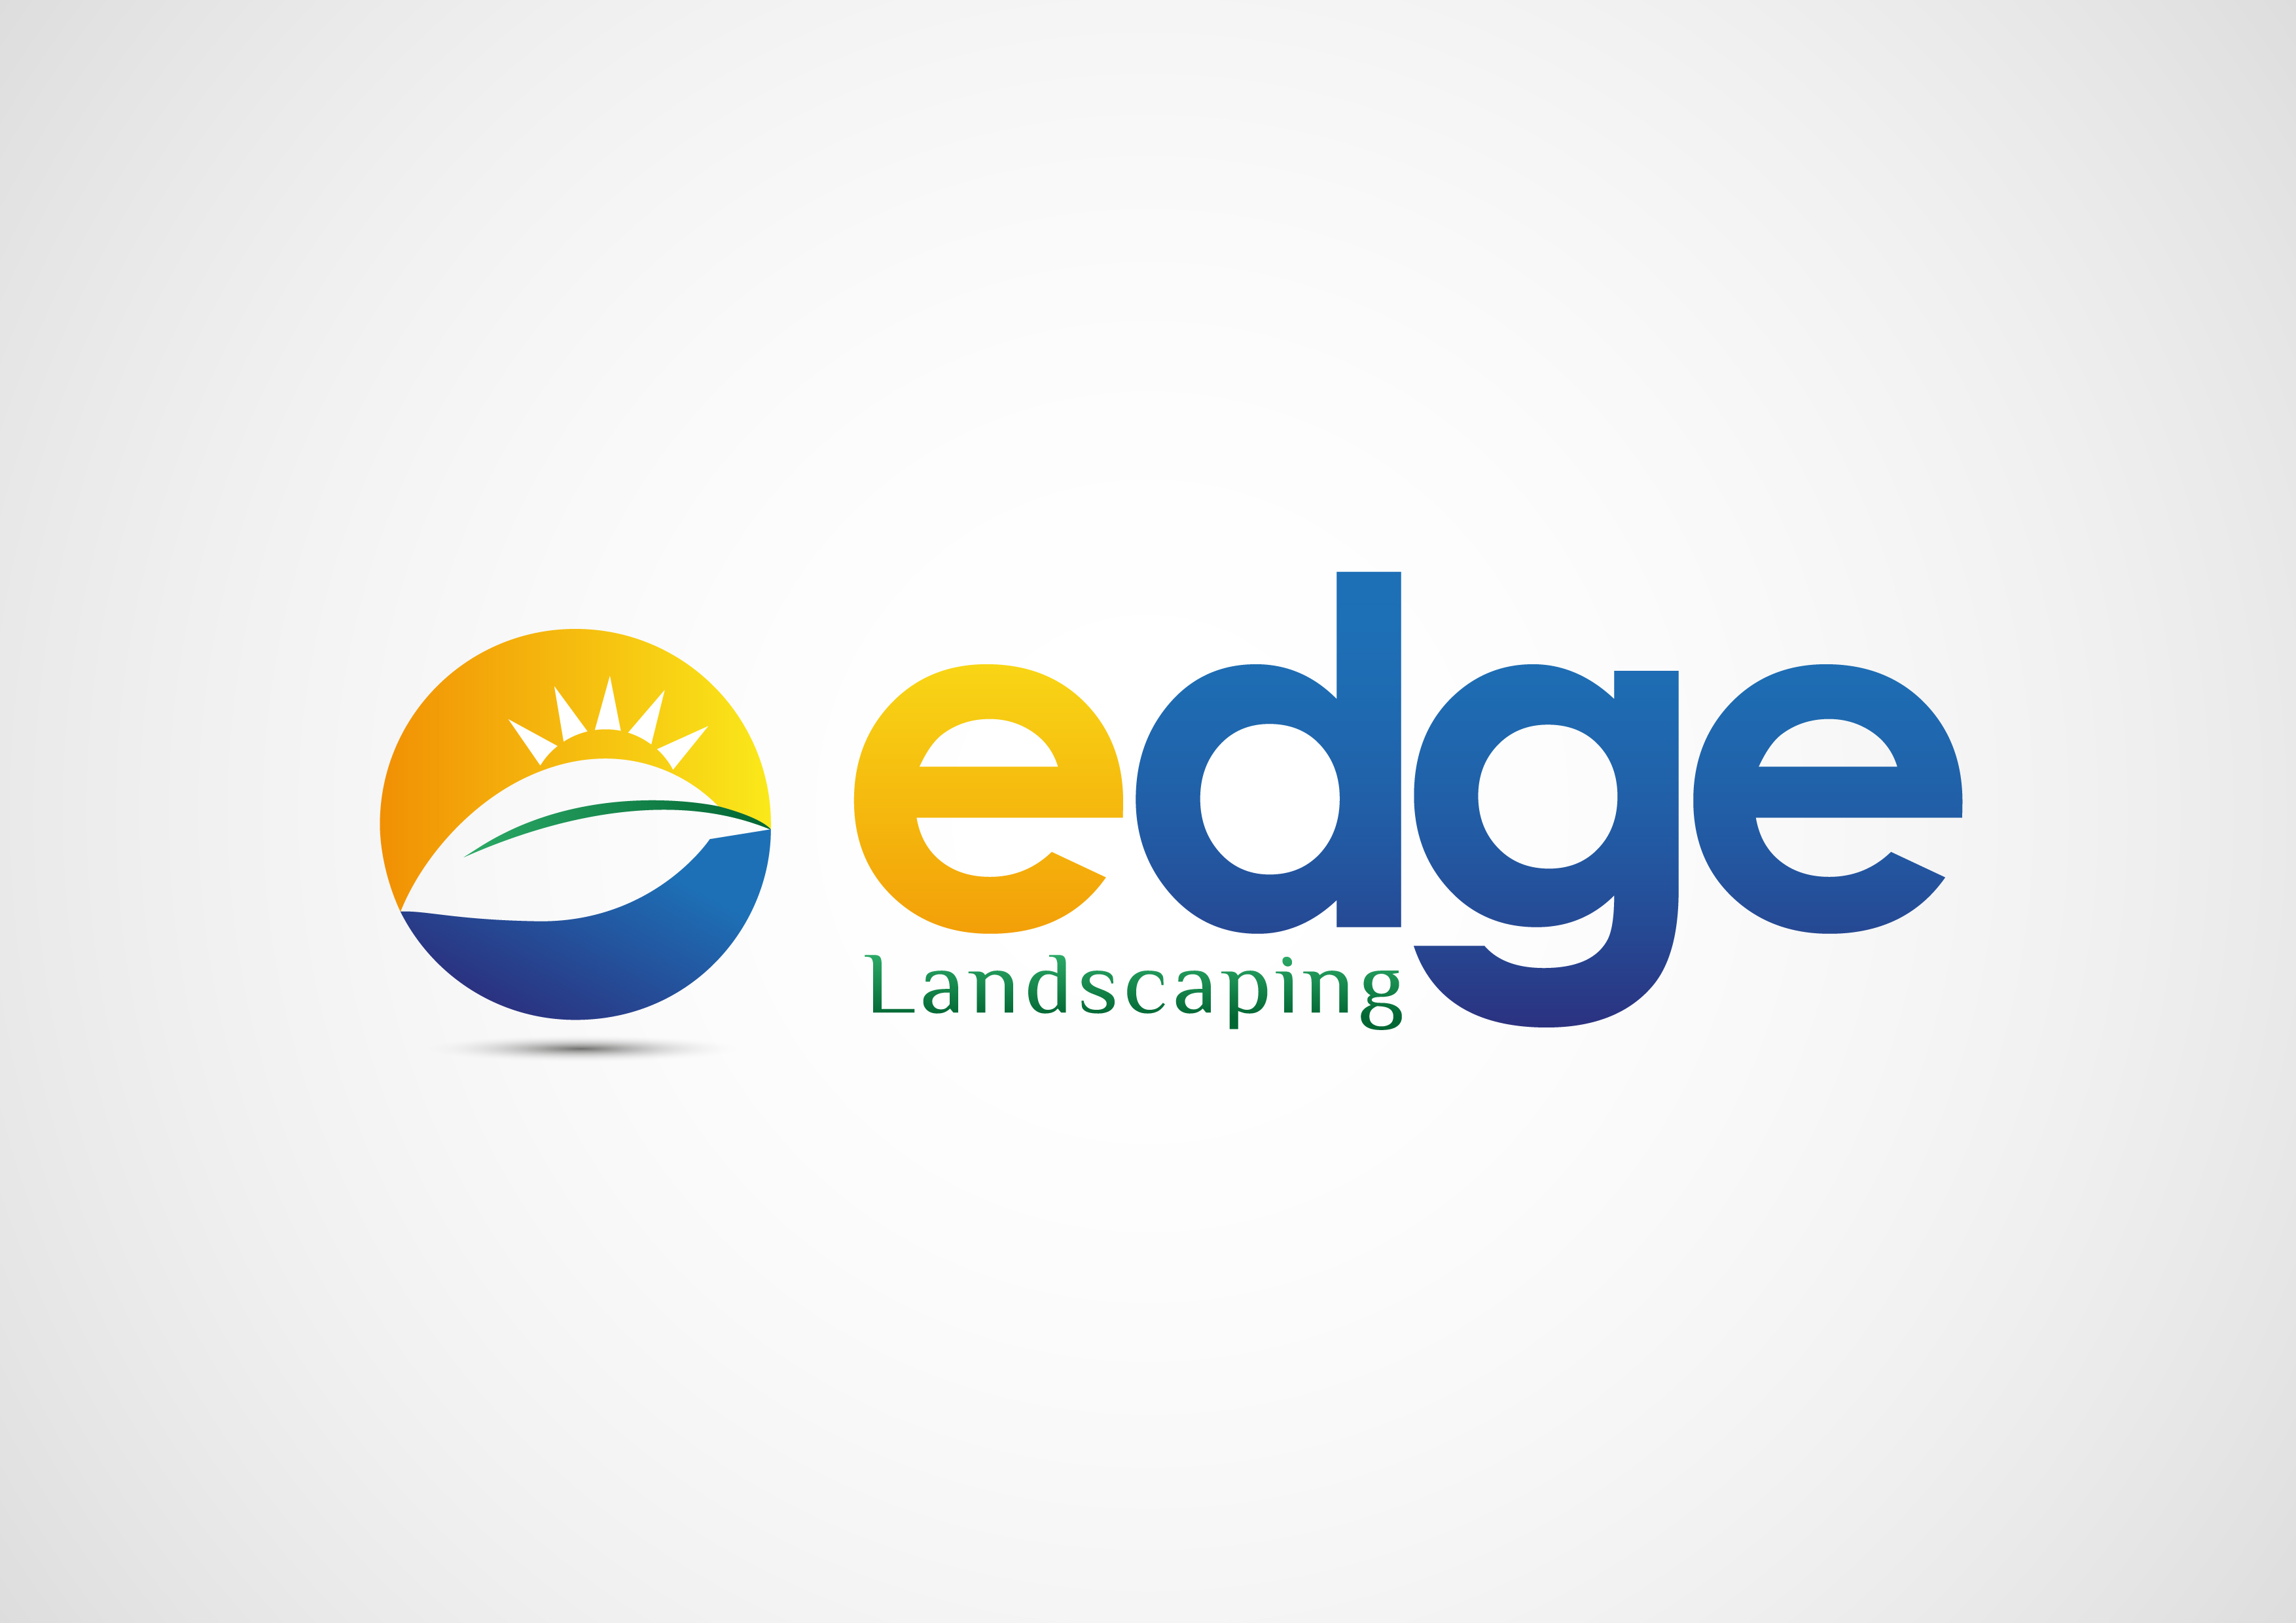 Logo Design by 3draw - Entry No. 187 in the Logo Design Contest Inspiring Logo Design for Edge Landscaping.